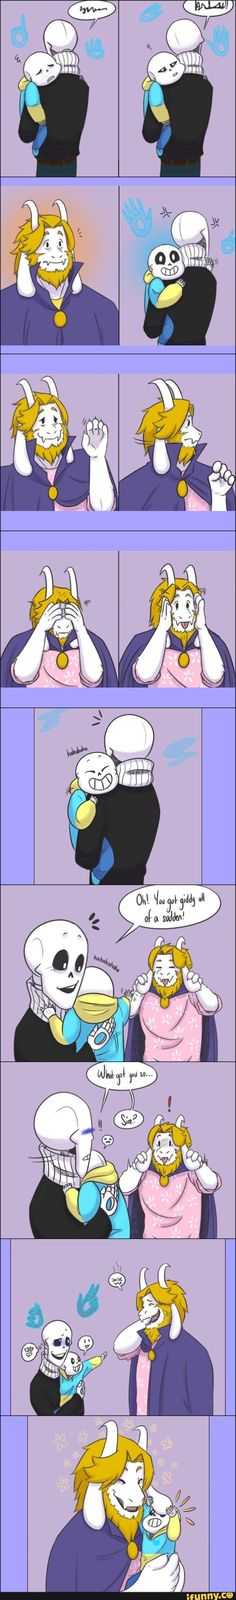 See, this is why I love Asgore. Yes, he made huge mistakes but he was just trying to make things better for his own people.